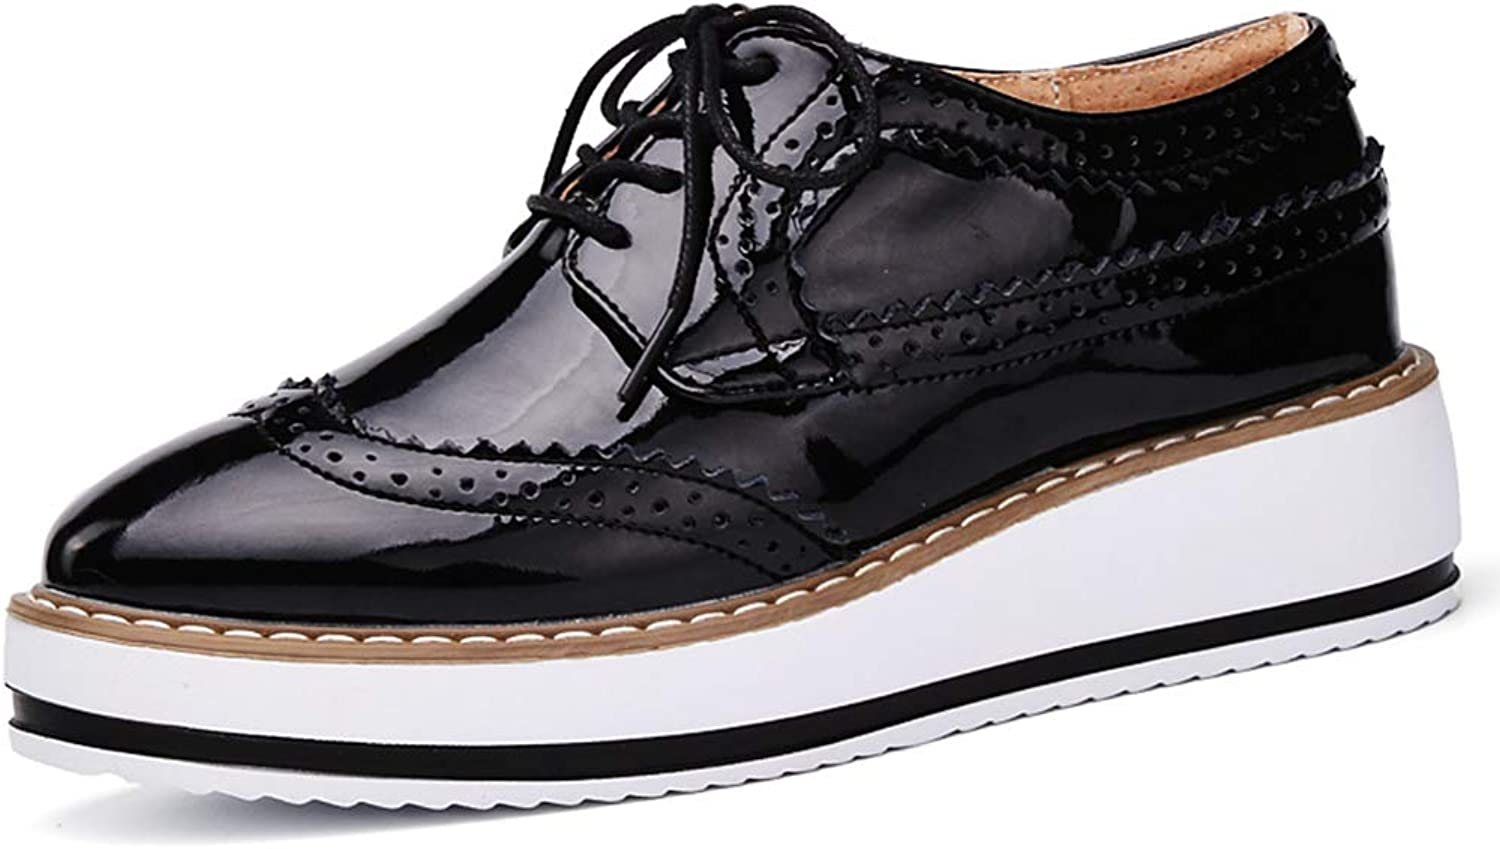 GilesJones Platform Loafers Women,Casual Hollow Lace up Flat Oxford shoes